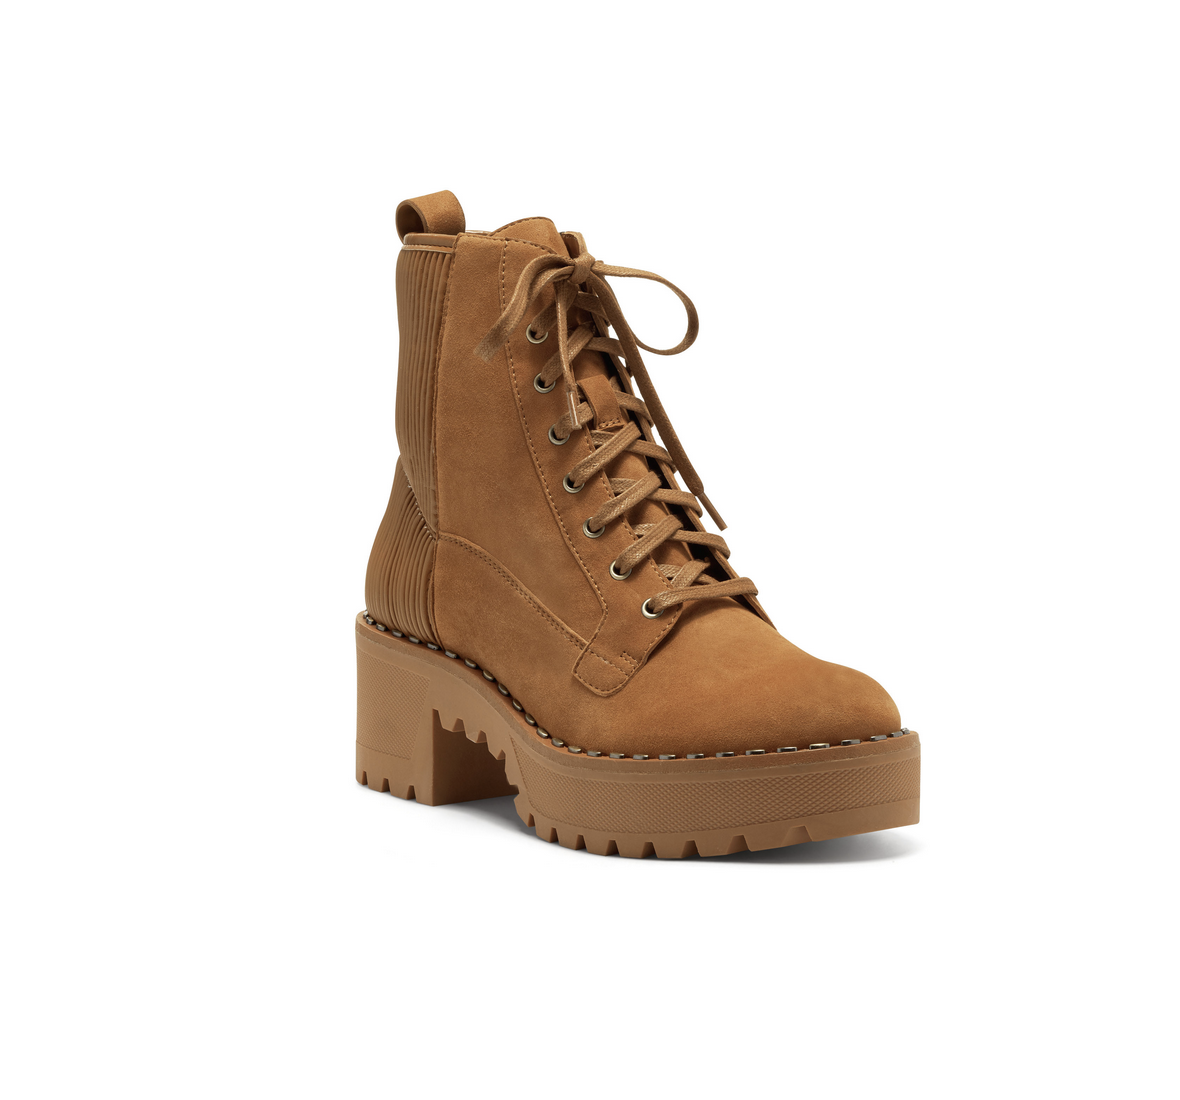 Vince Camuto Movelly-Tawny Birch